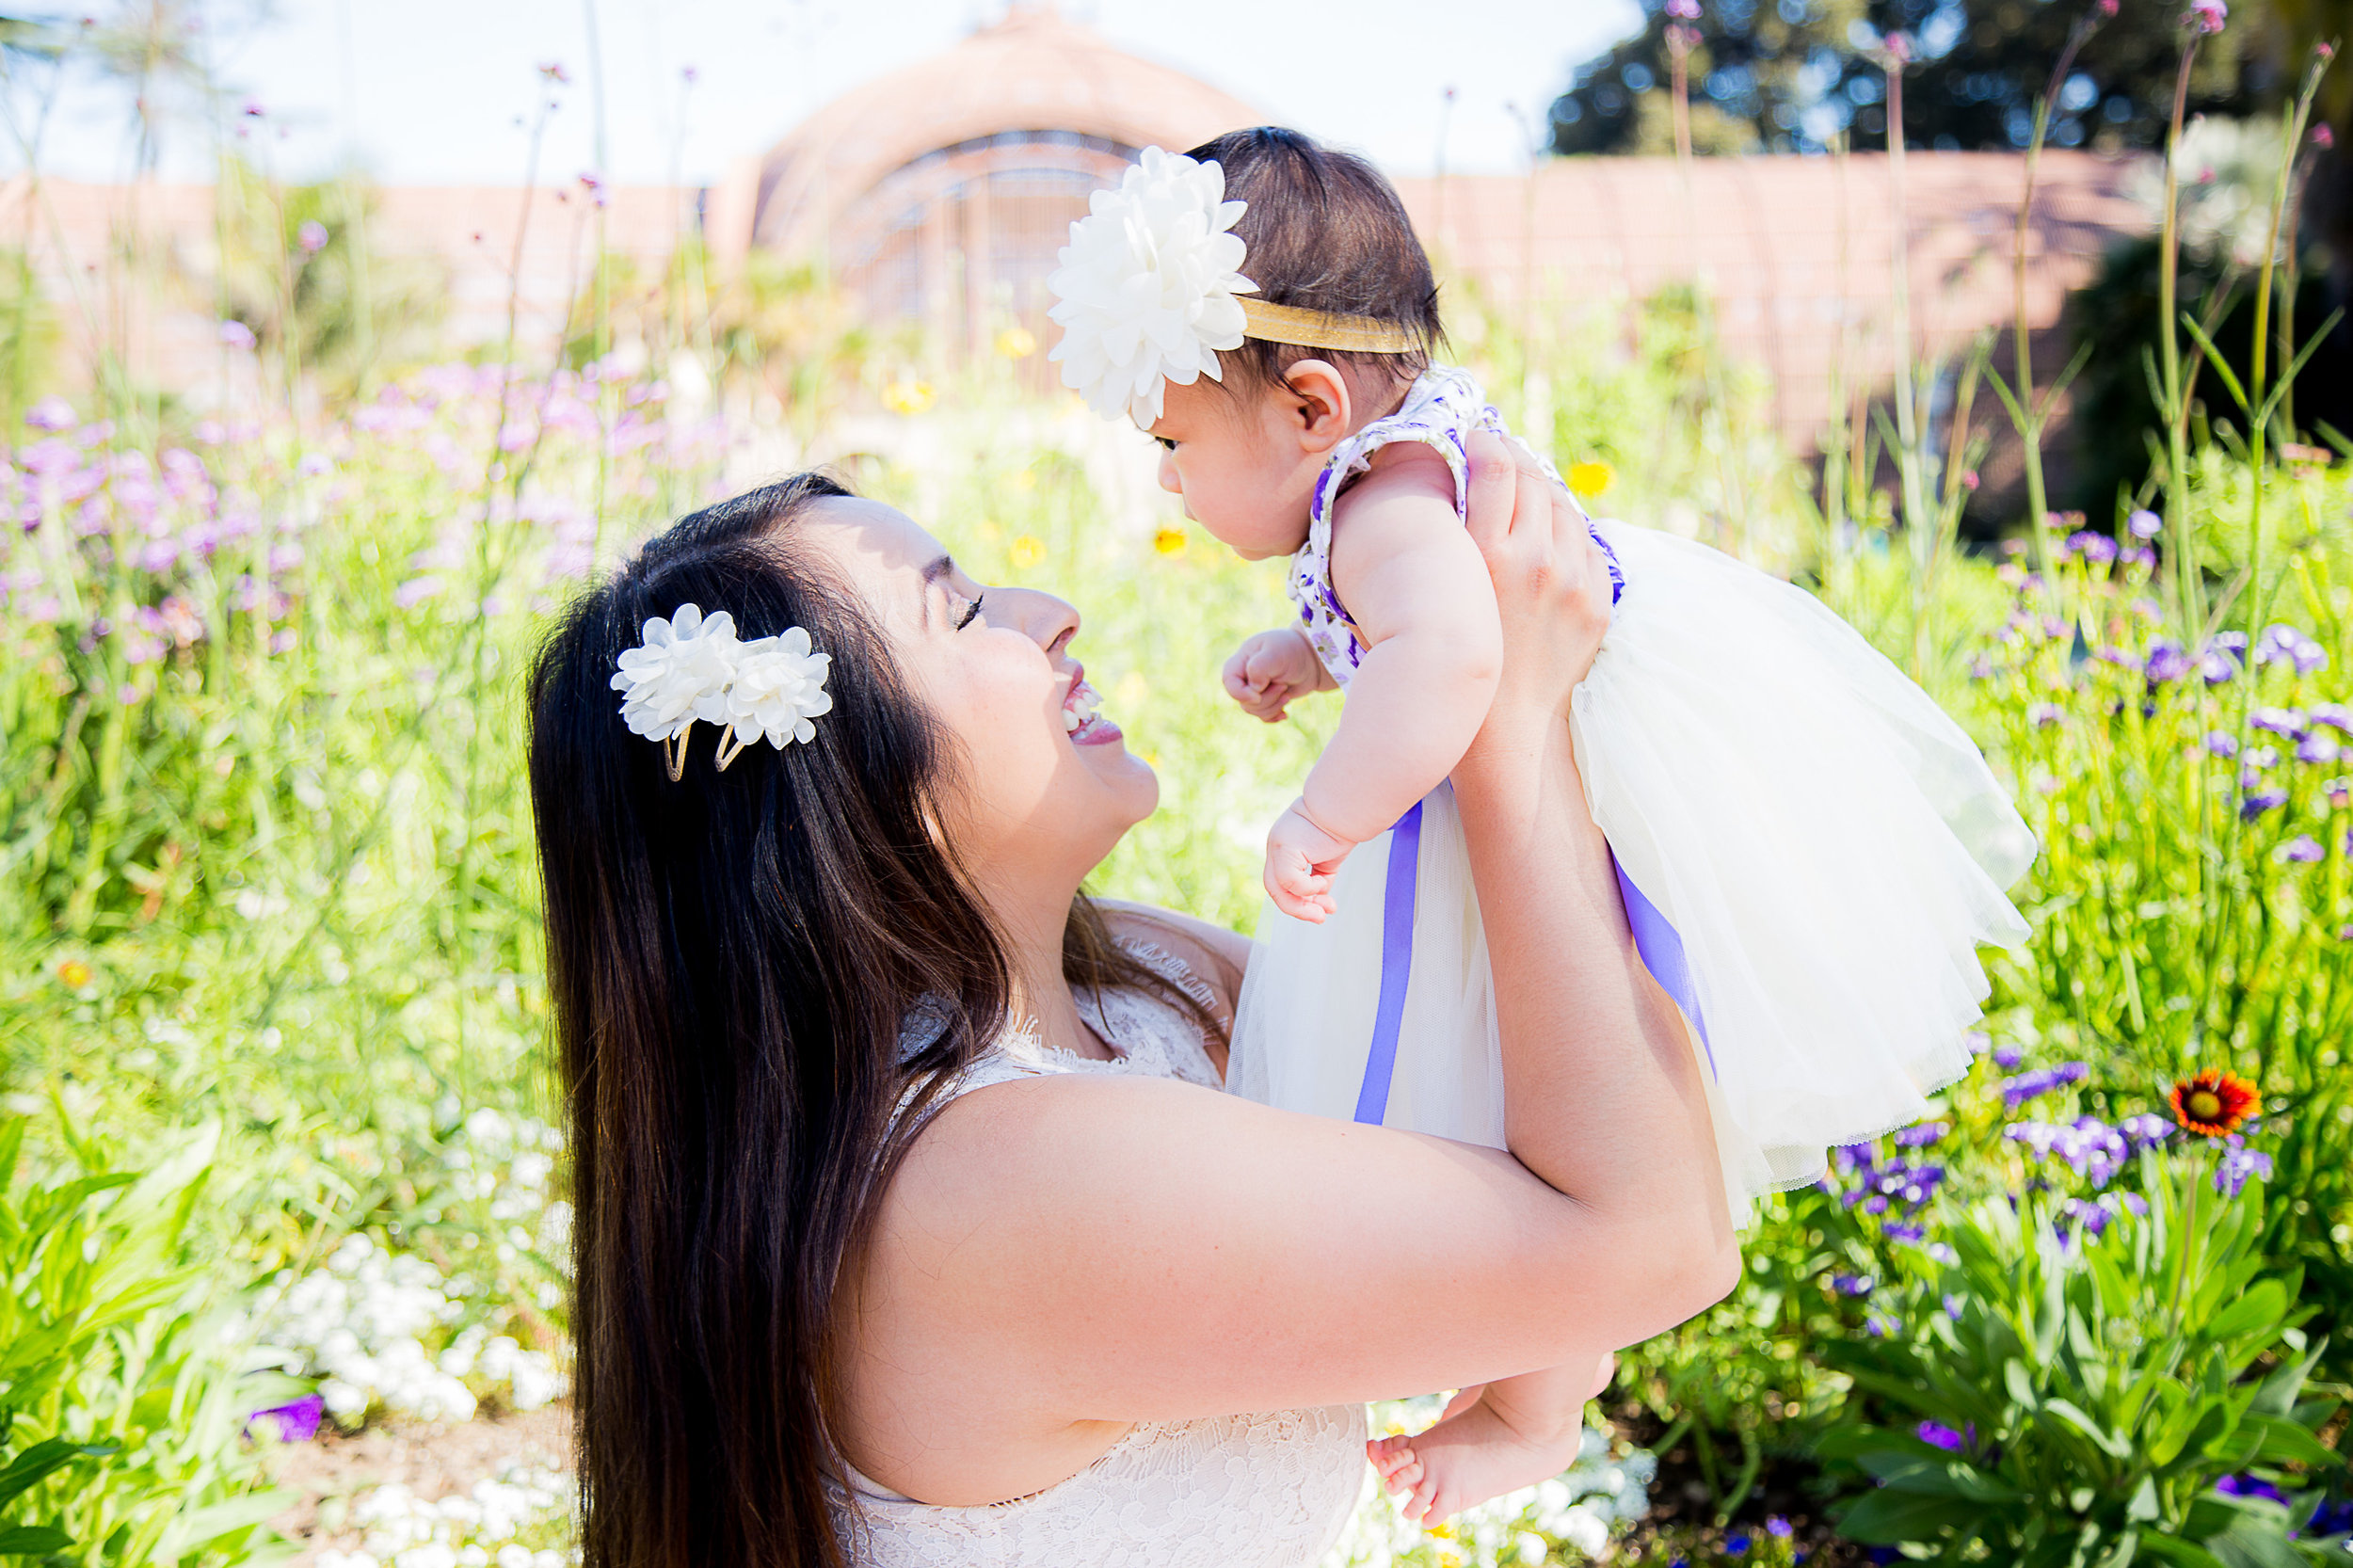 mommy-and-me-balboa-park-wild-flowers-spring (13 of 136).jpg